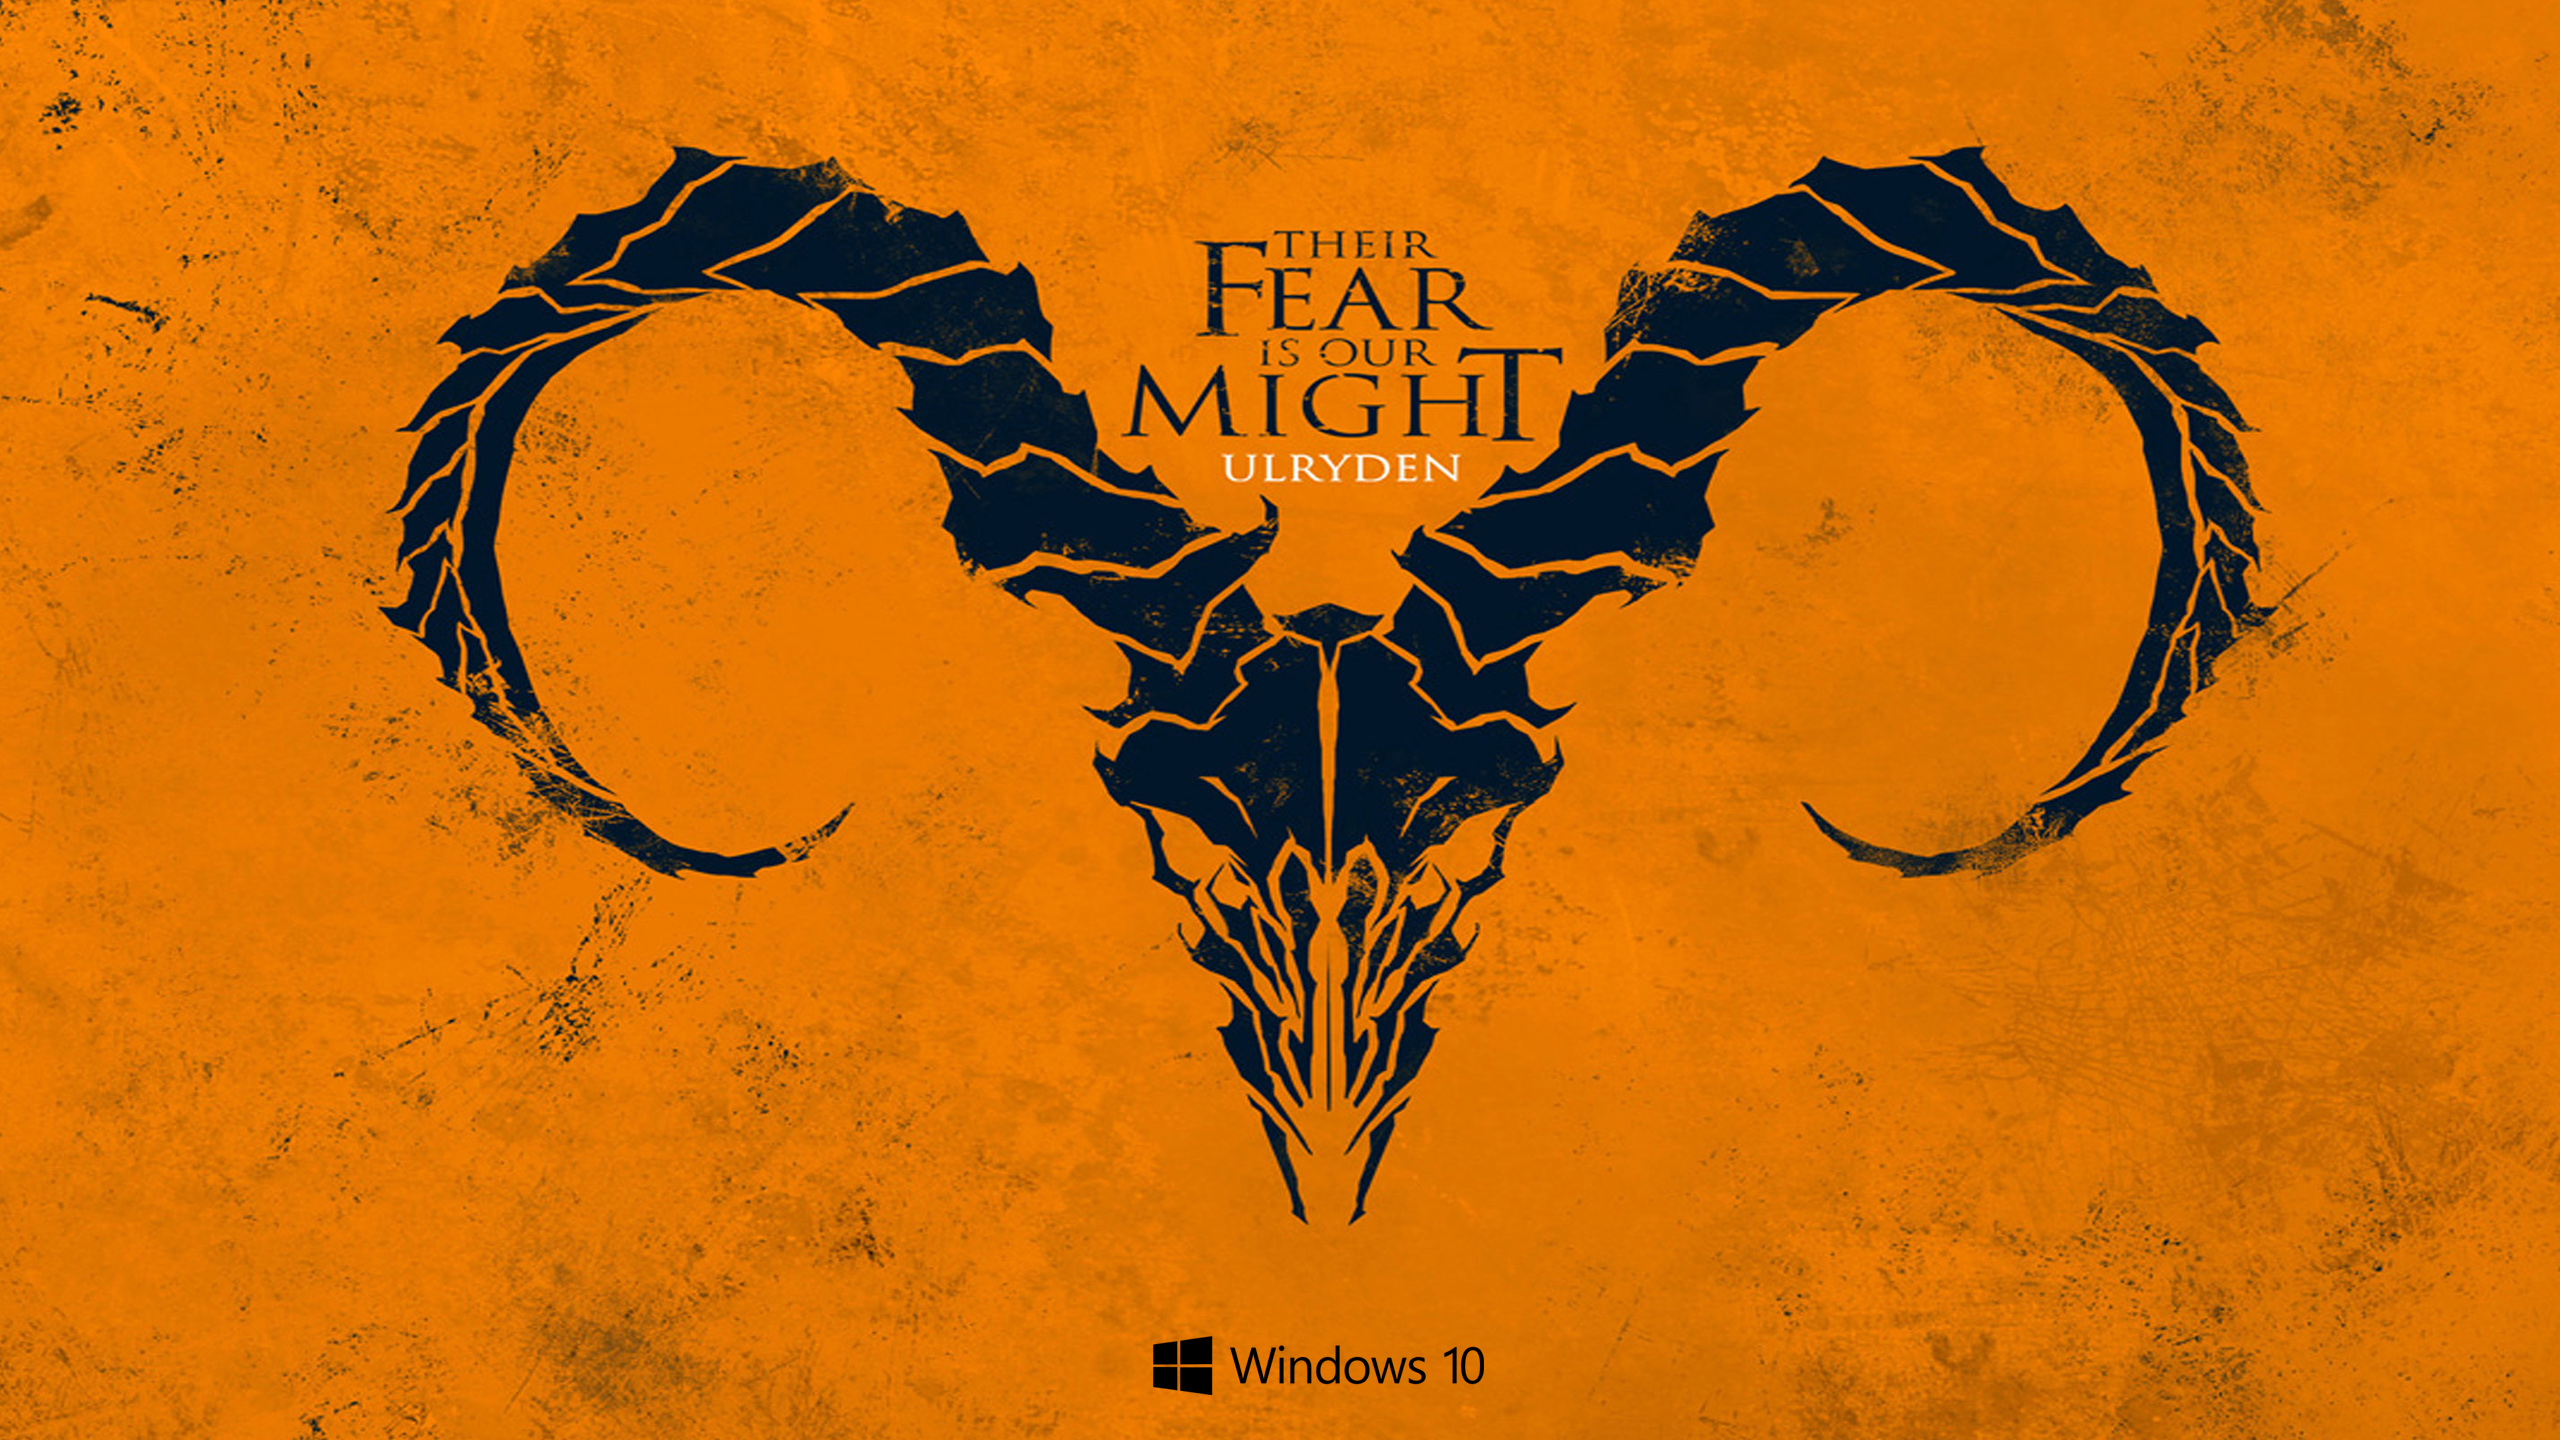 Windows 10 Wallpaper Game Of Thrones House Ulryden